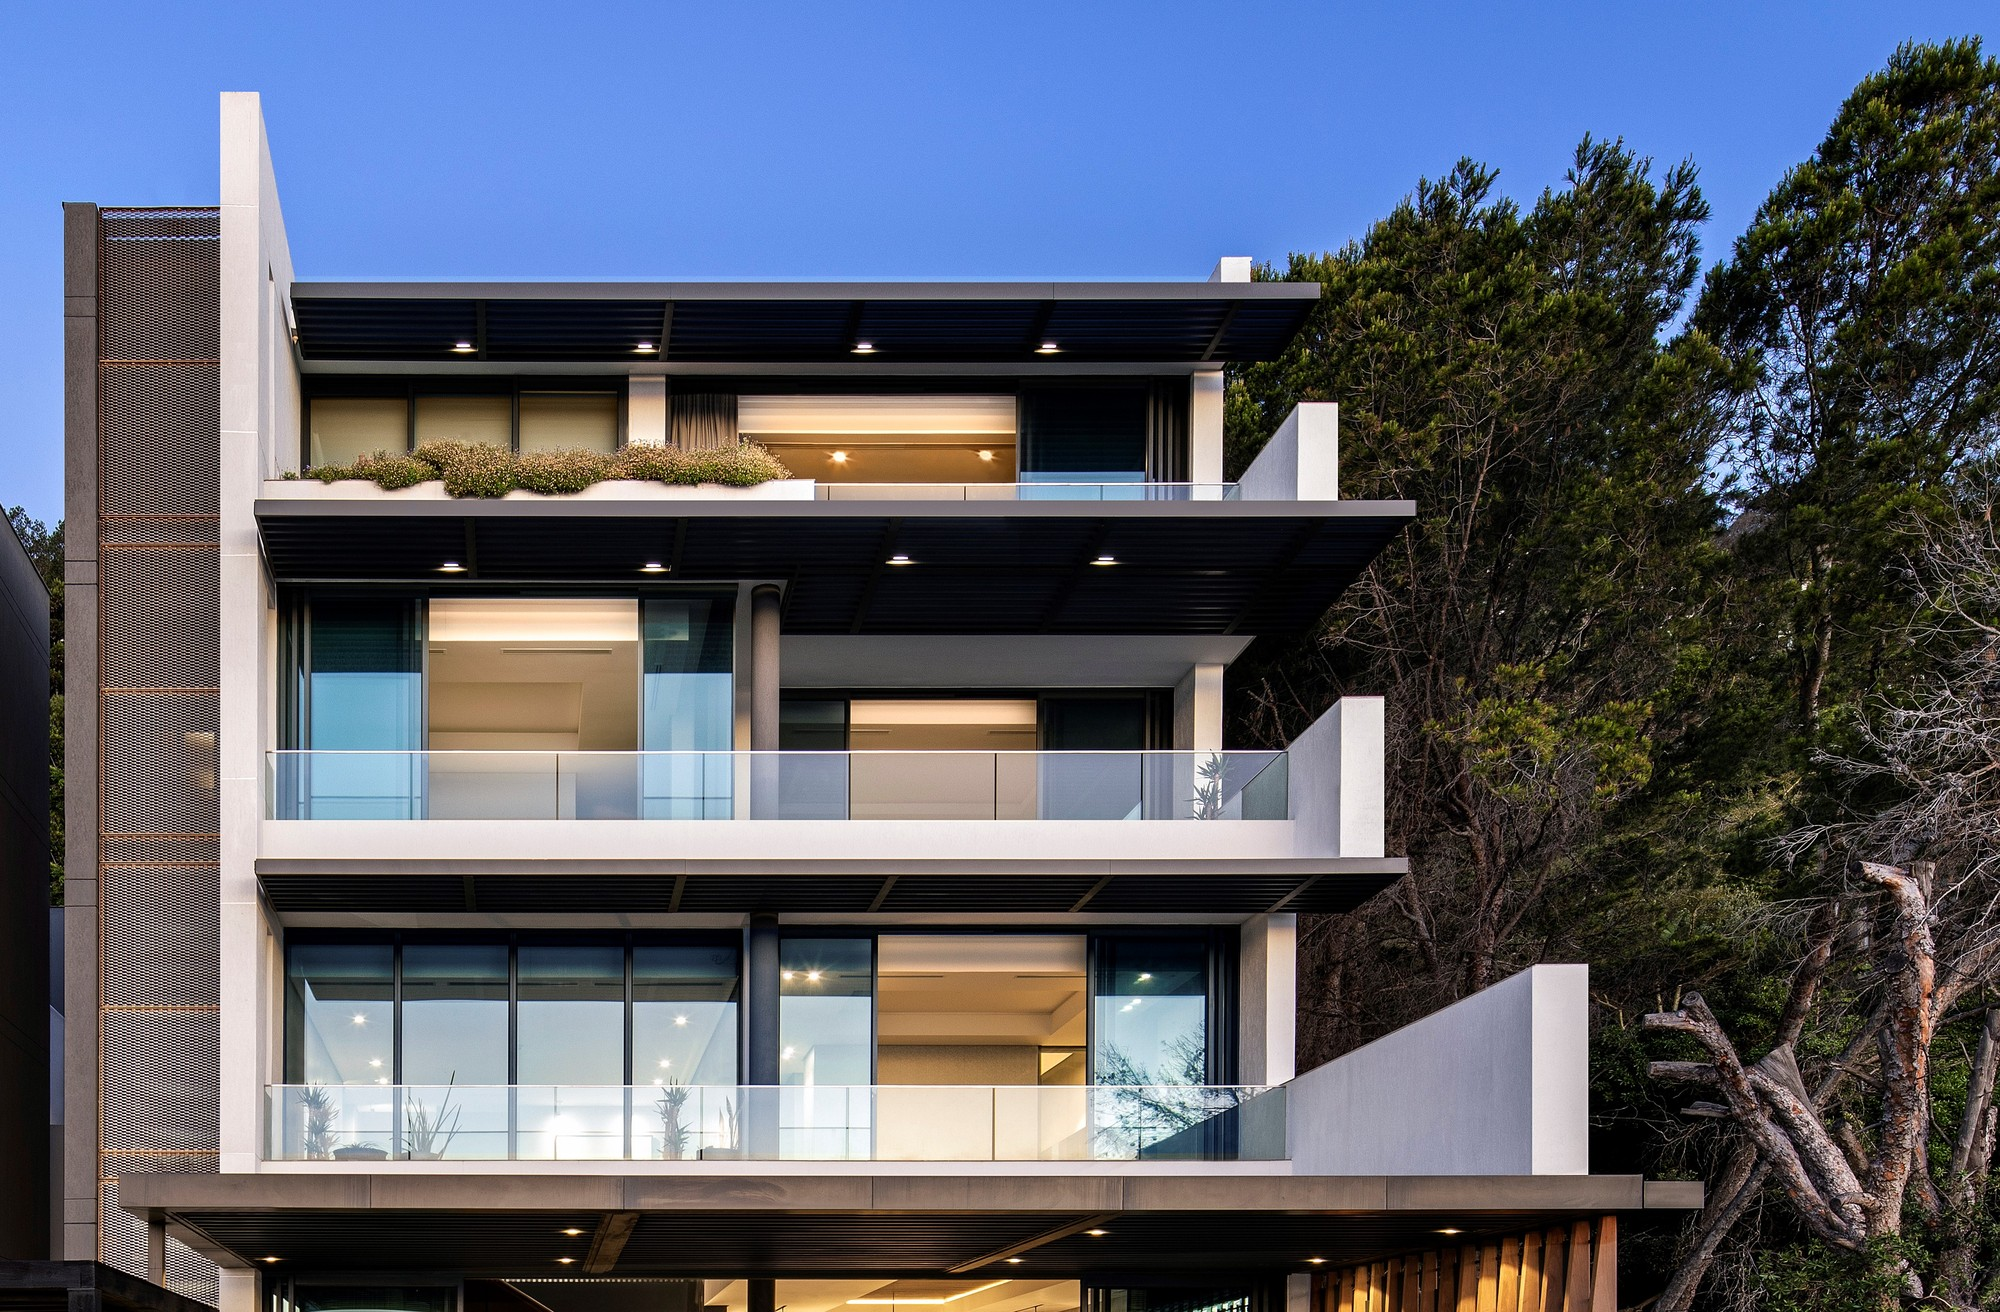 Penthouse architecture and design | ArchDaily